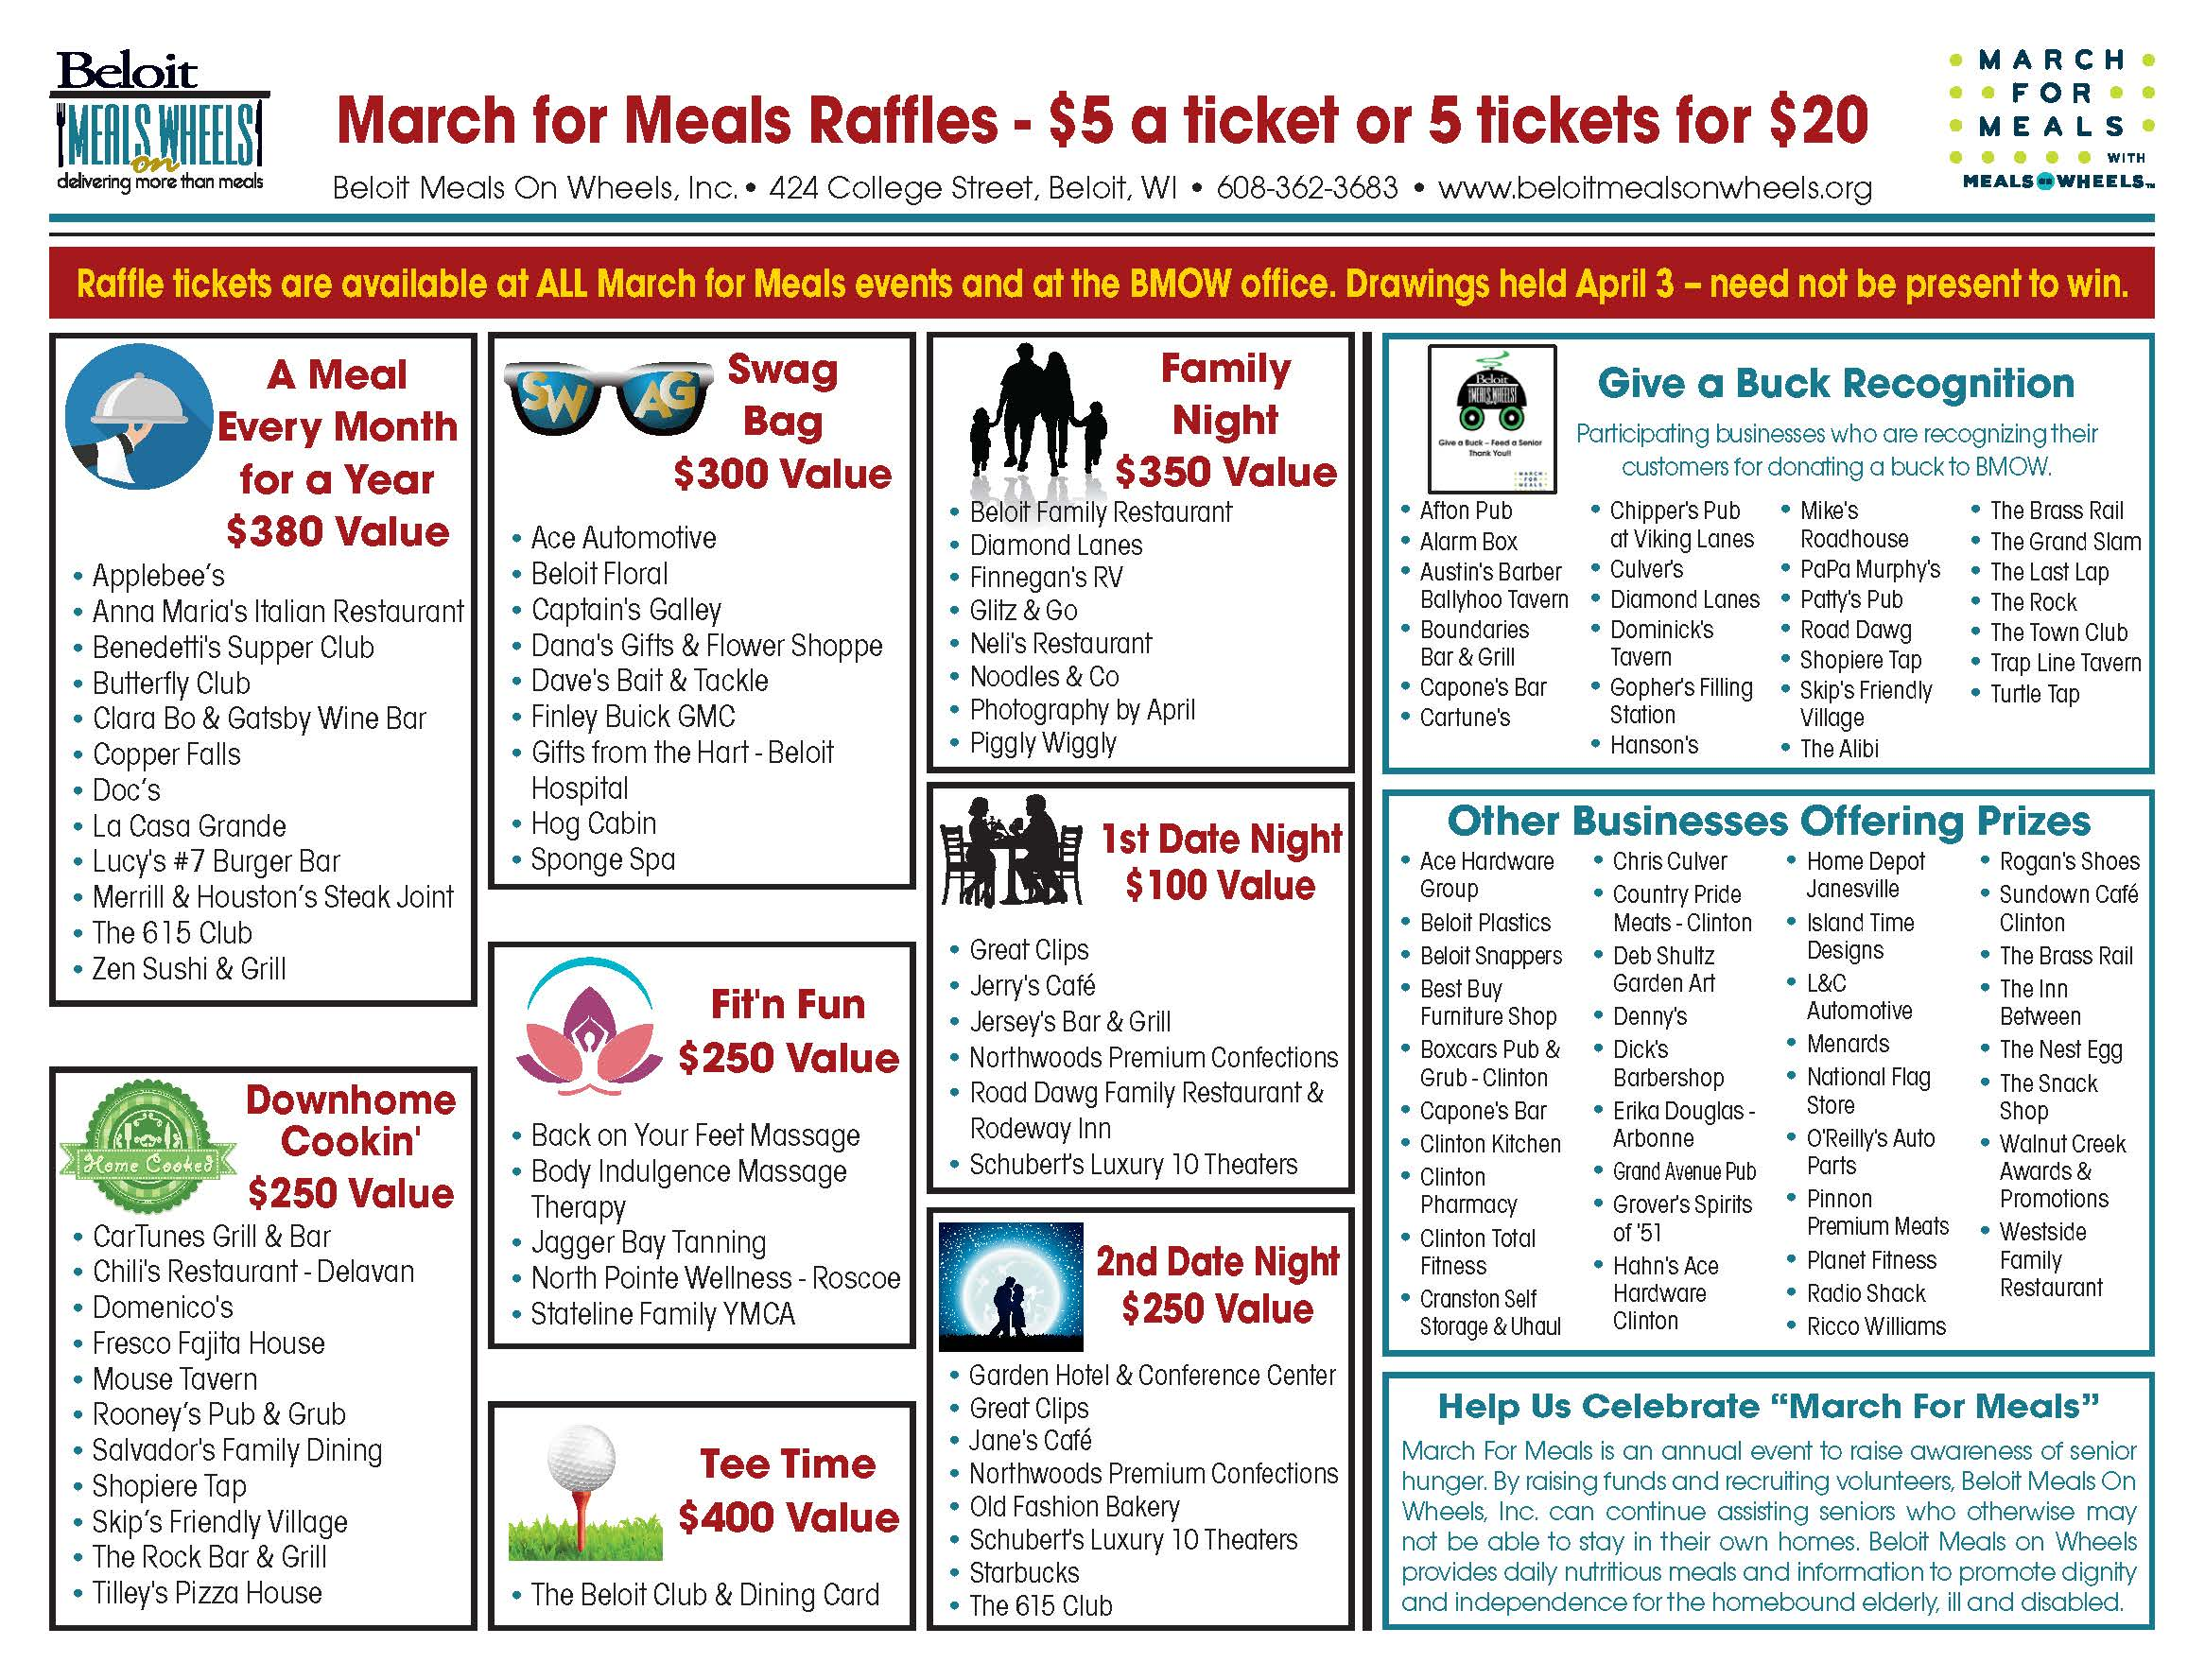 Winner of March For Meals Raffles Announced